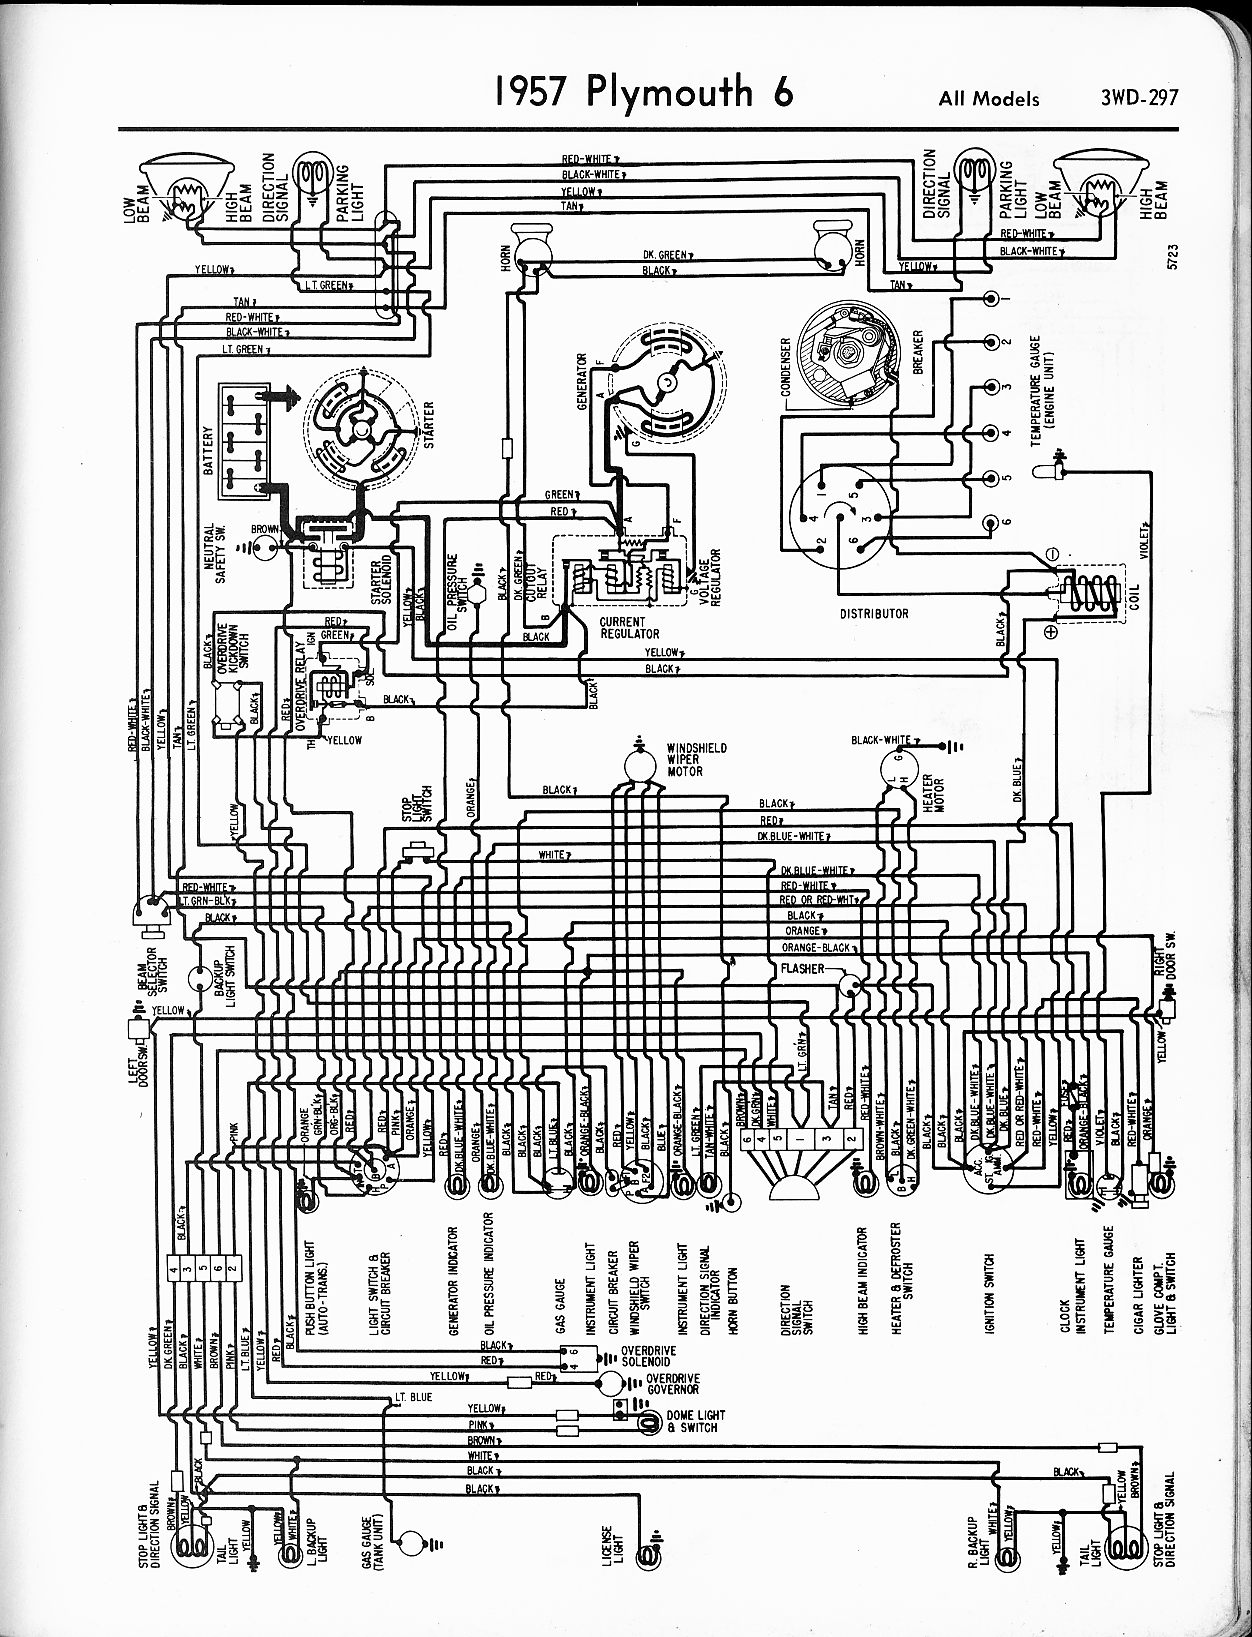 plymouth valiant ac wiring wiring diagram1972 plymouth valiant wiring diagram 12 pop capecoralplymouth valiant ac wiring 5 kop savic family de